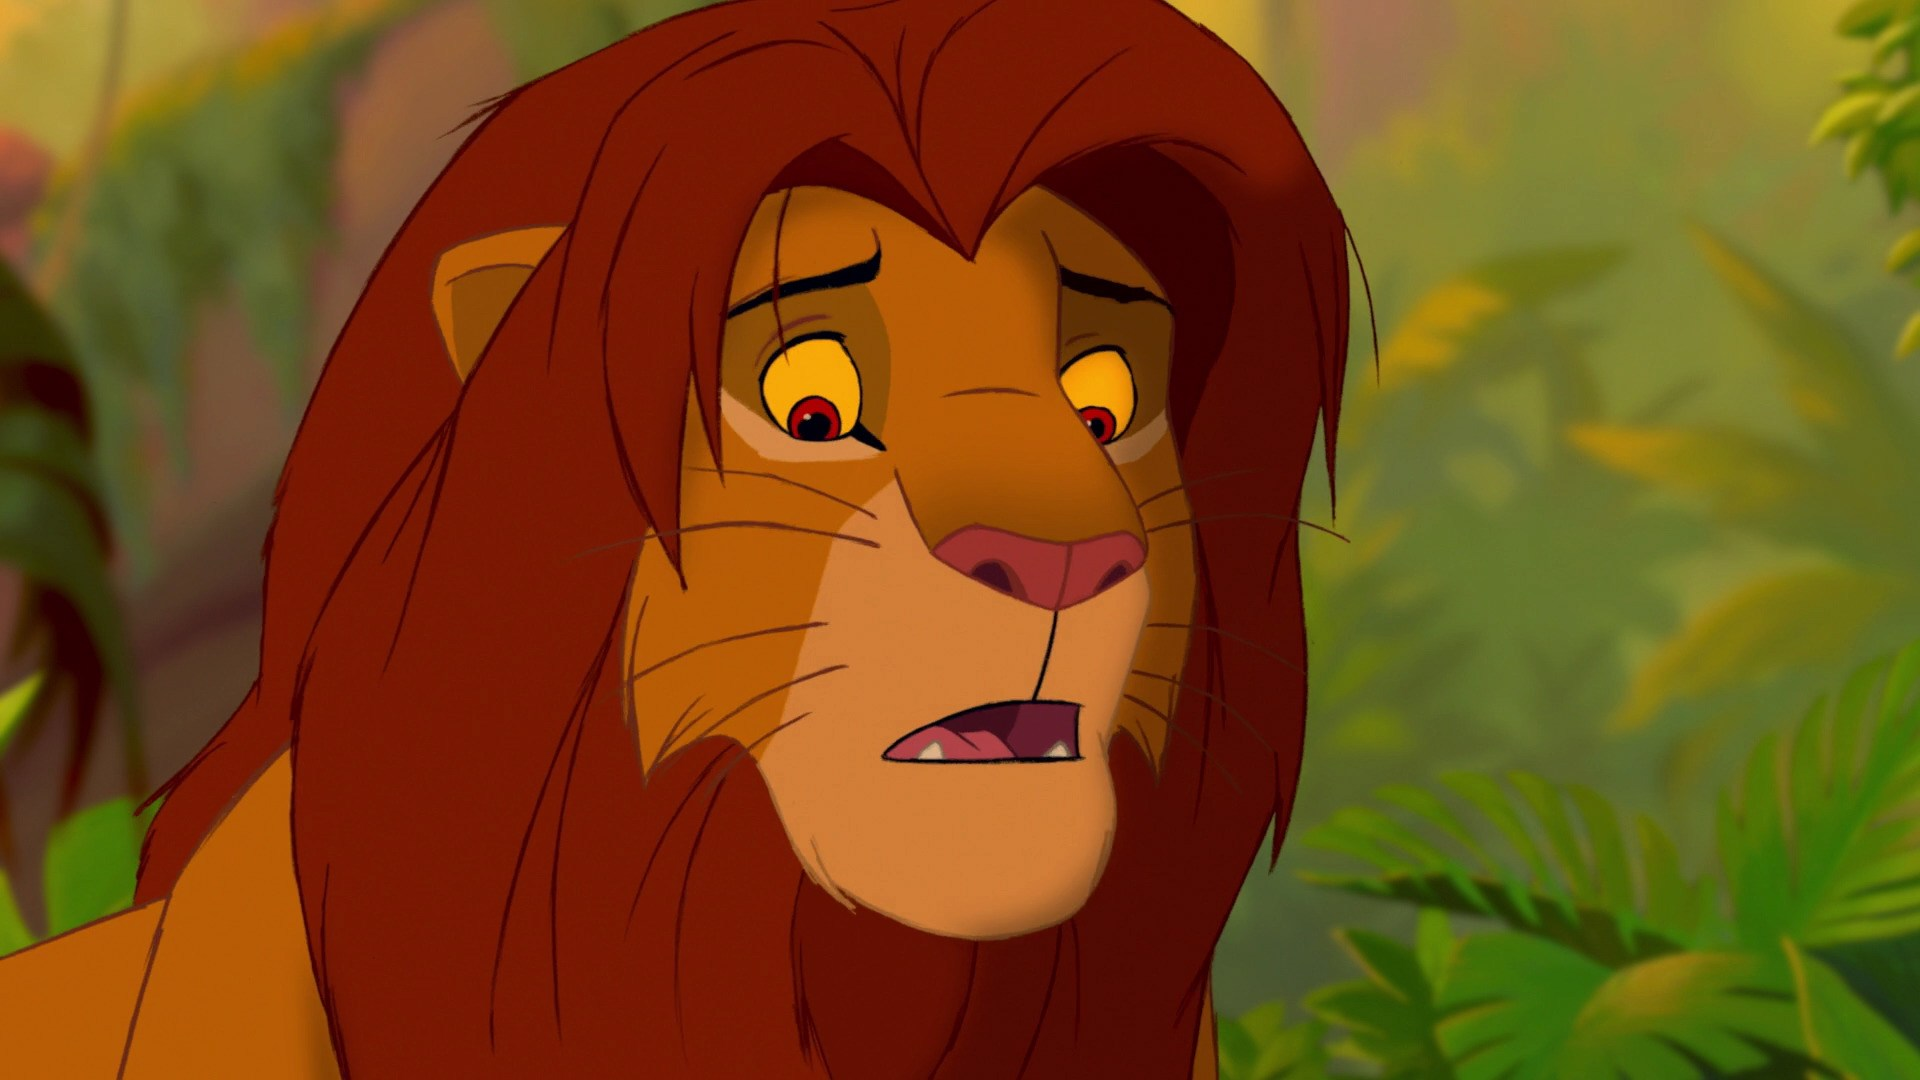 002lion-king-disneyscreencaps.com-6664.jpg